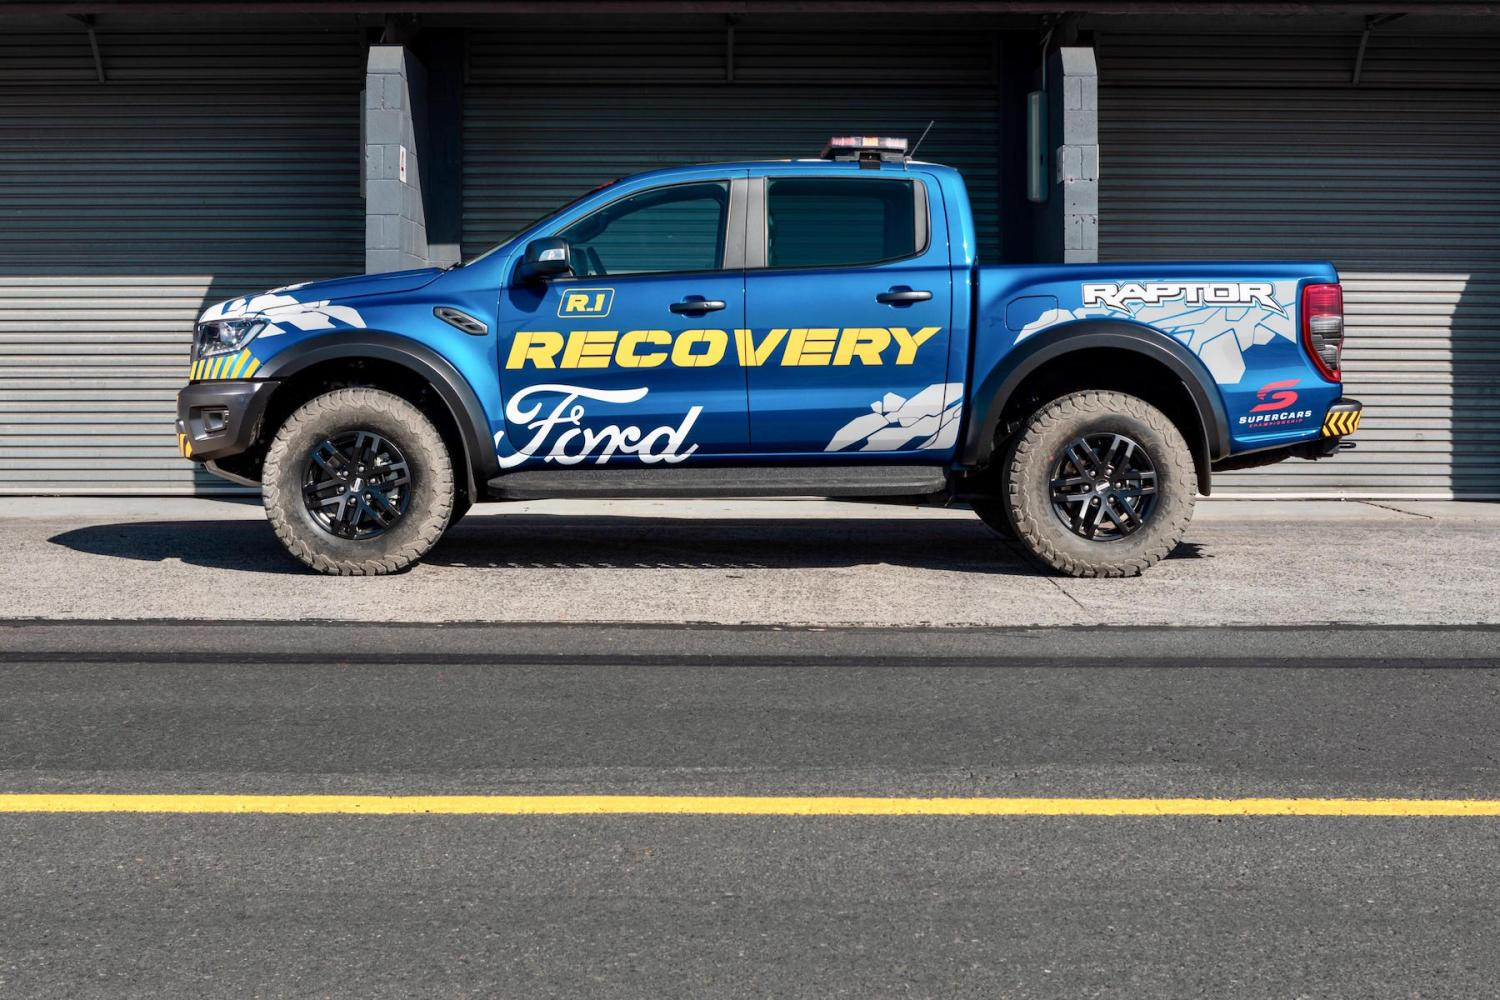 2019 ford performance ranger raptor recovery vehicle